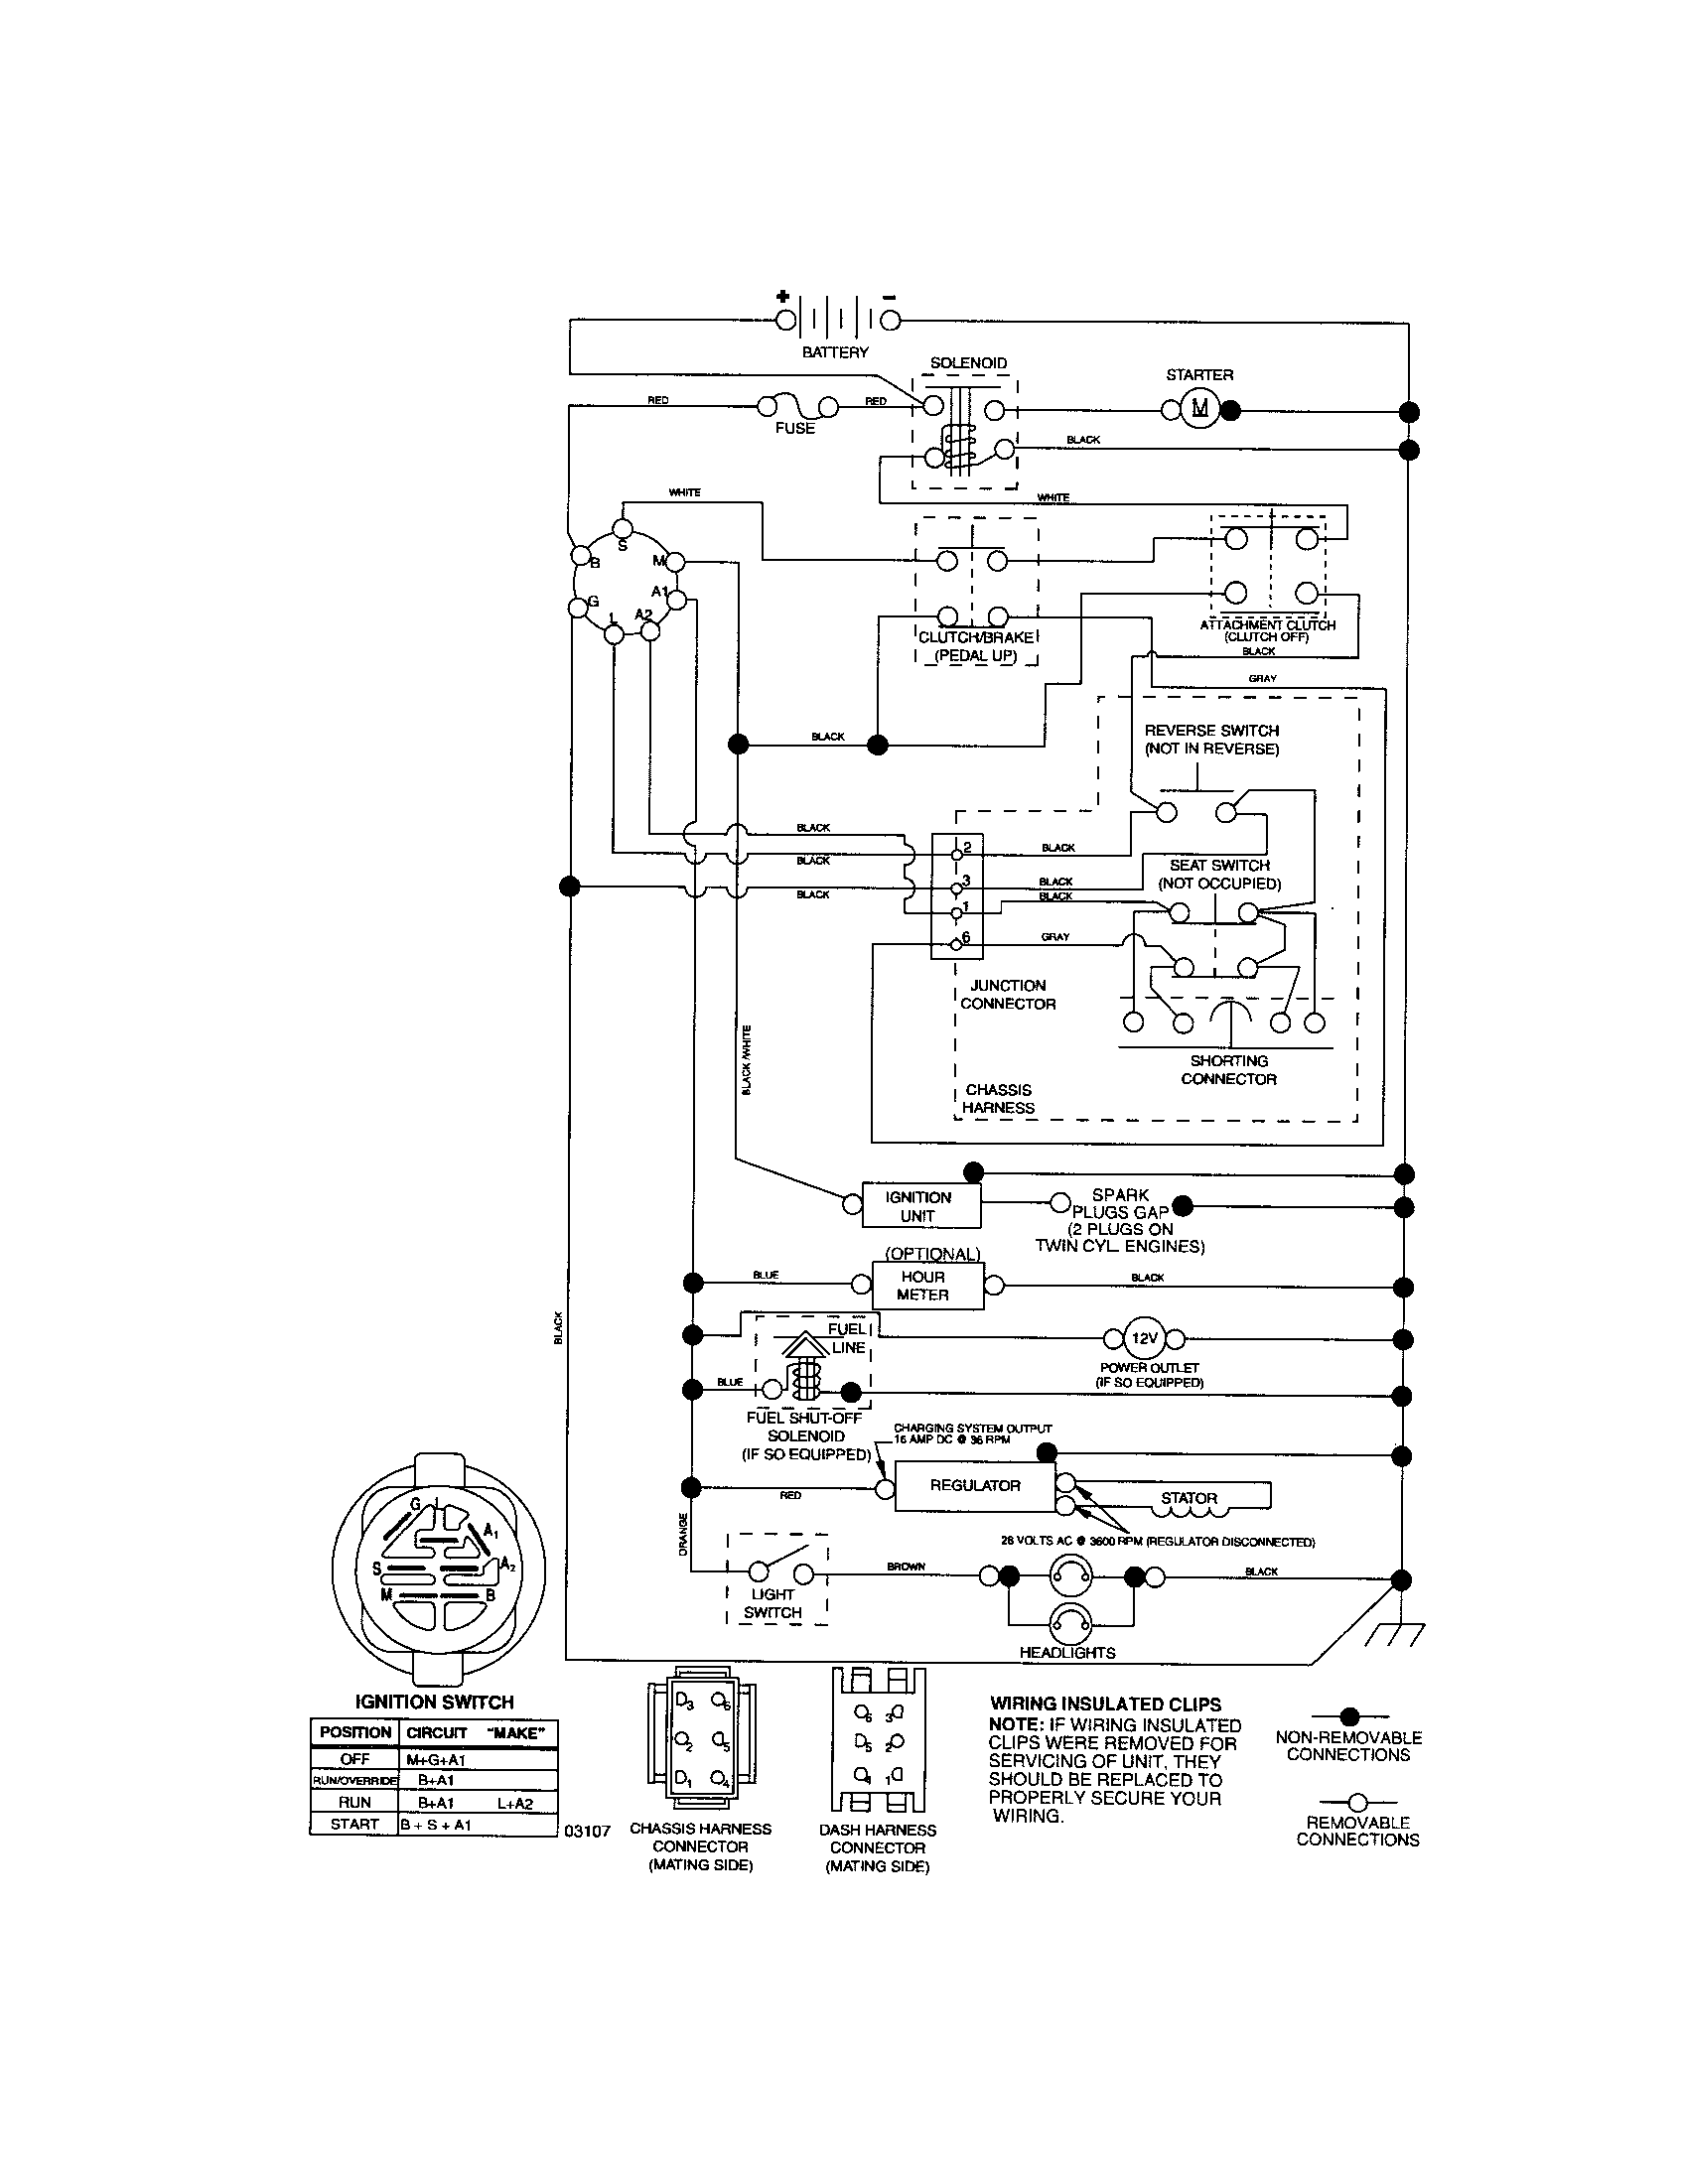 craftsman riding mower electrical diagram wiring diagram craftsman rh pinterest com Basic Wiring Diagram for a Riding Mower Lawn Mower Solenoid Wiring Diagram